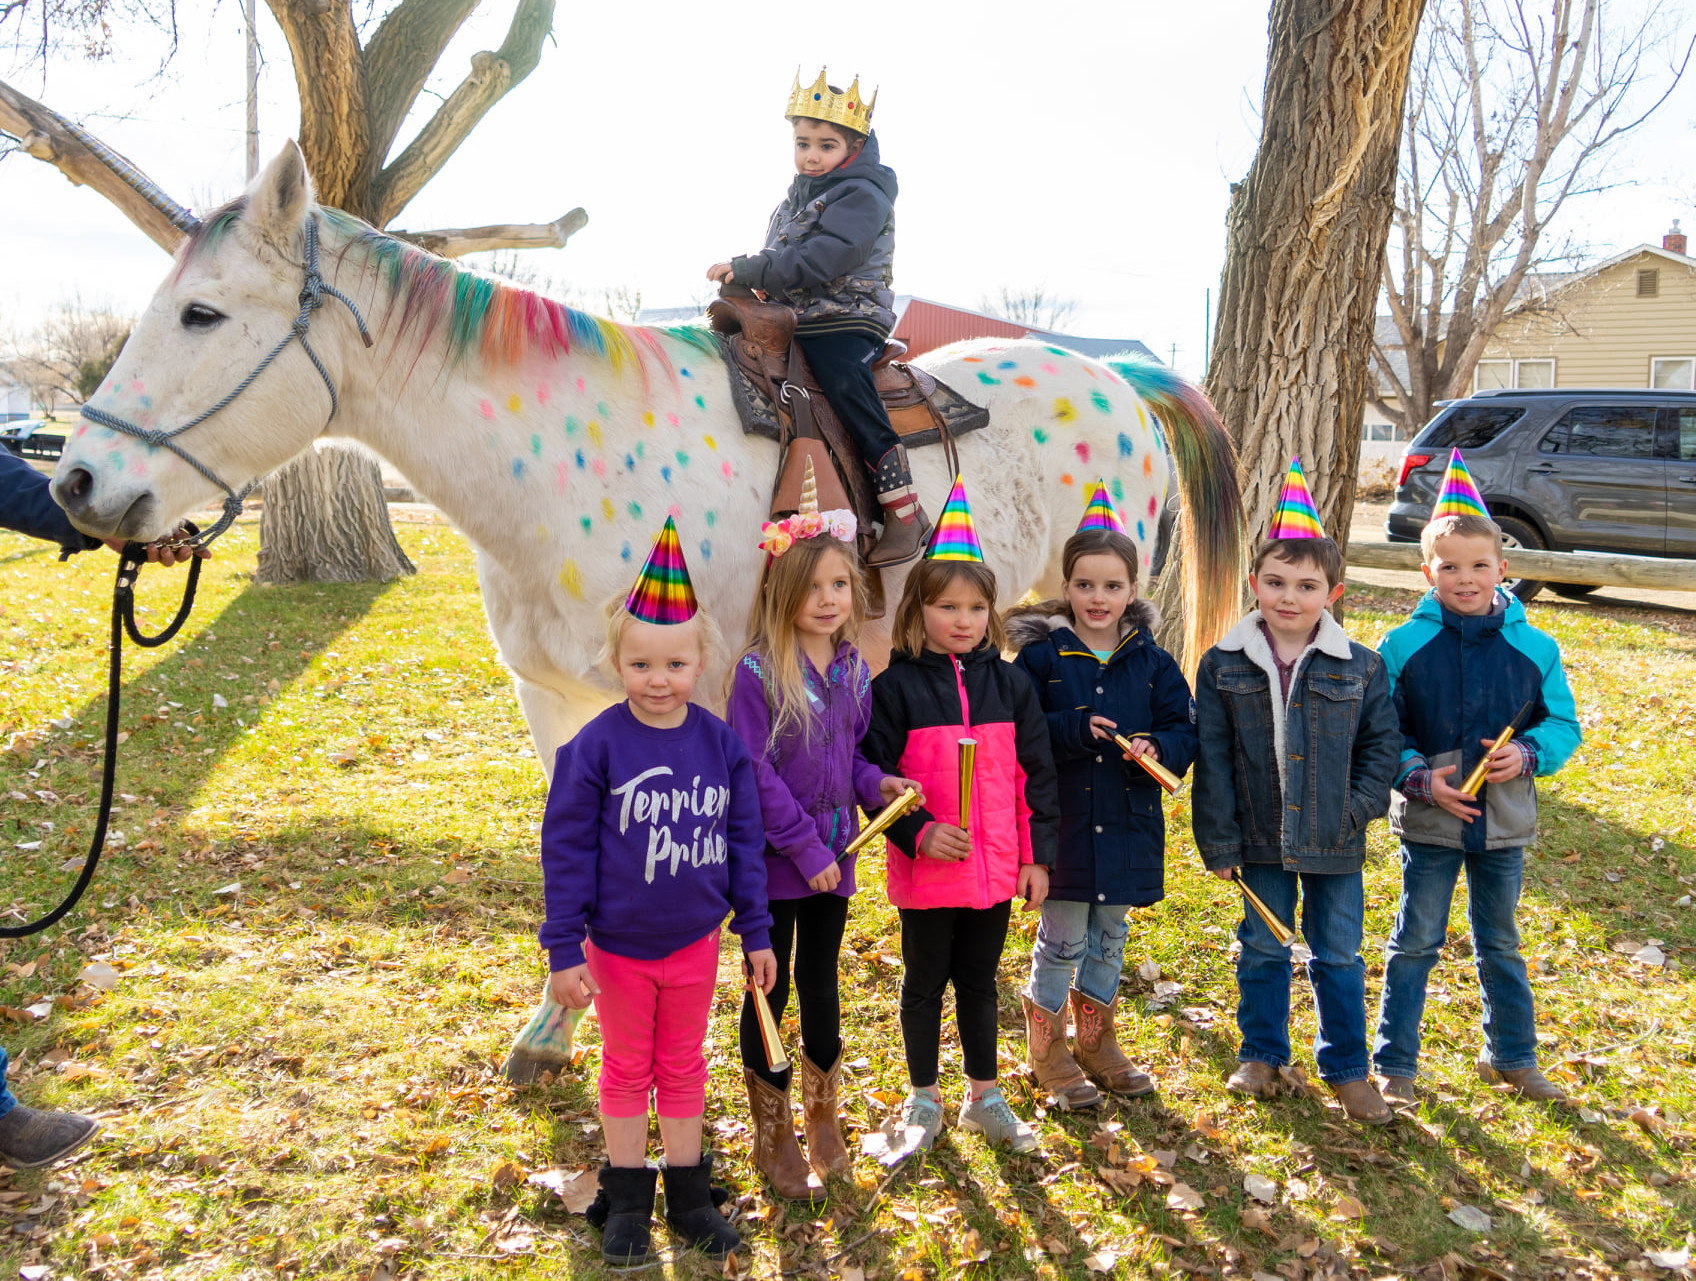 5-year-old Montana boy with brain cancer gets ride on 'unicorn'